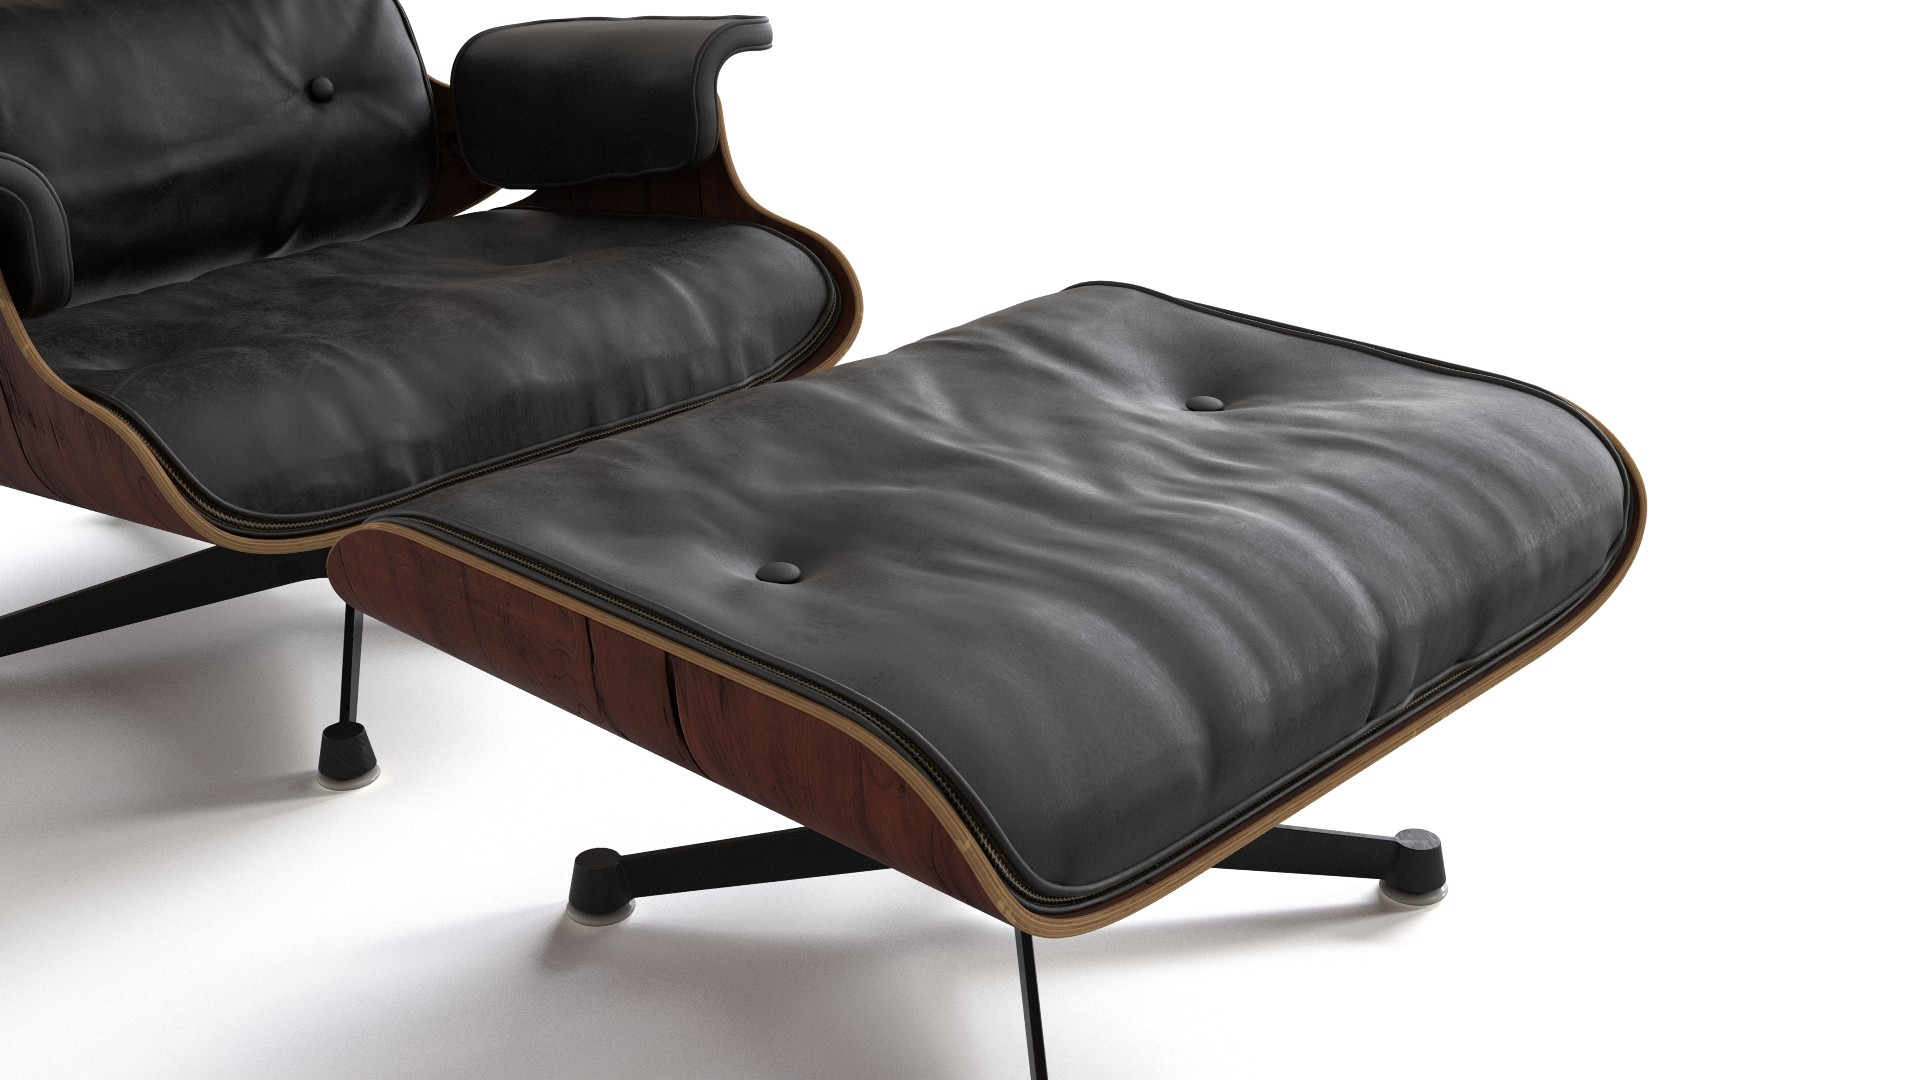 Tremendous Eames Lounge Chair With Ottoman Flyingarchitecture Beatyapartments Chair Design Images Beatyapartmentscom